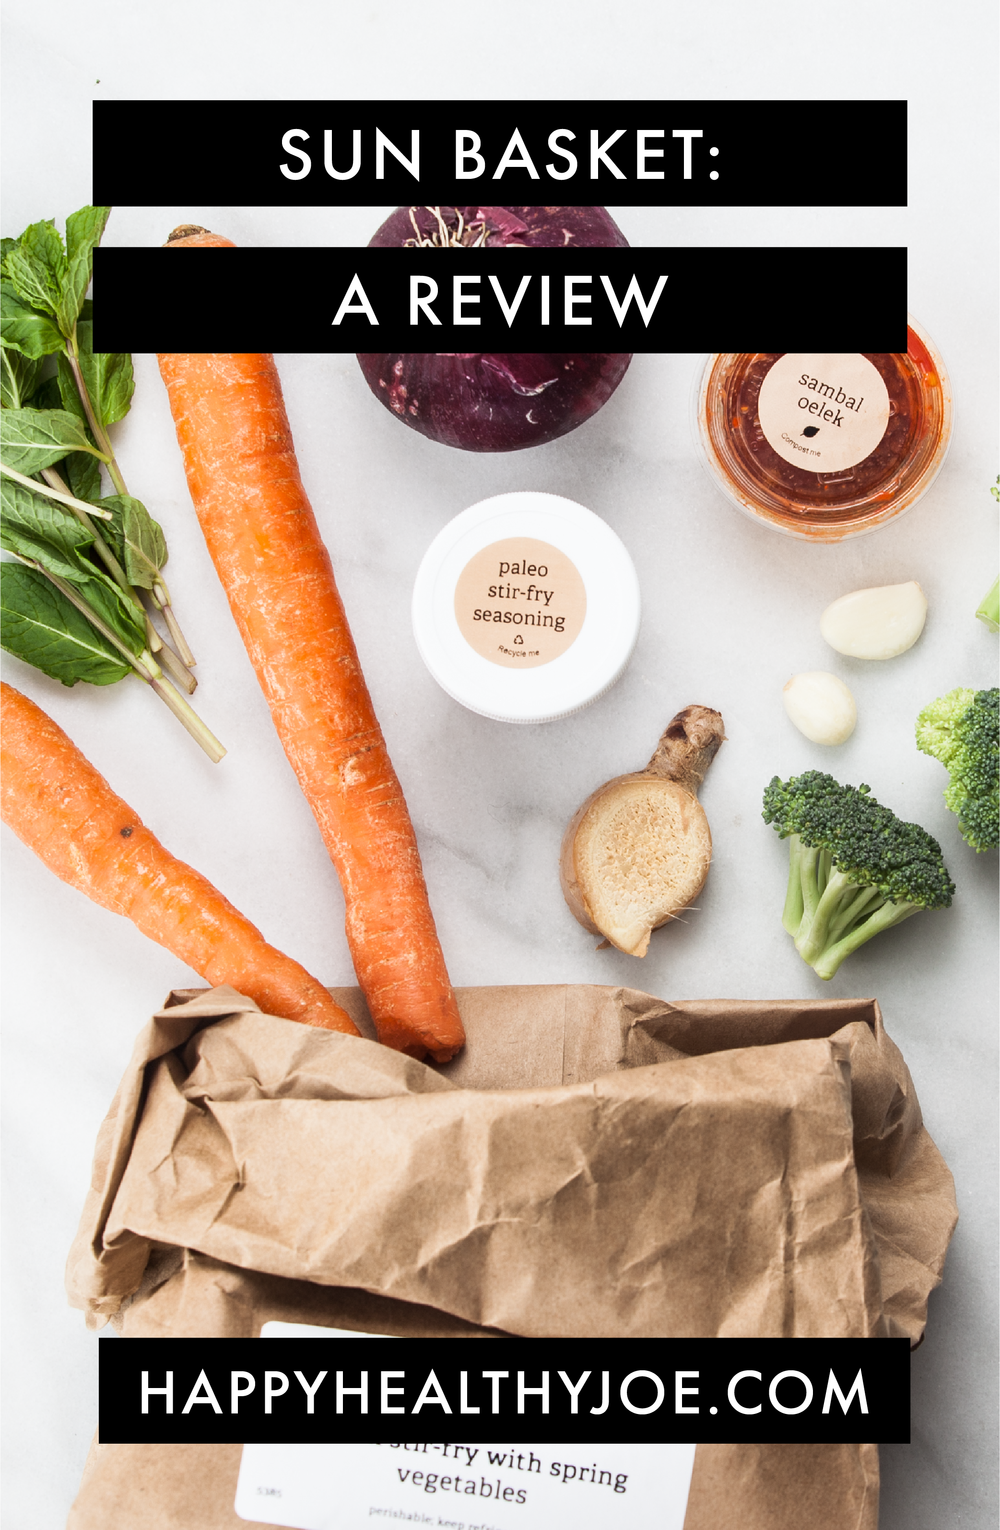 Sun Basket: A Review (The Best Whole30 Paleo Meal Delivery Service)